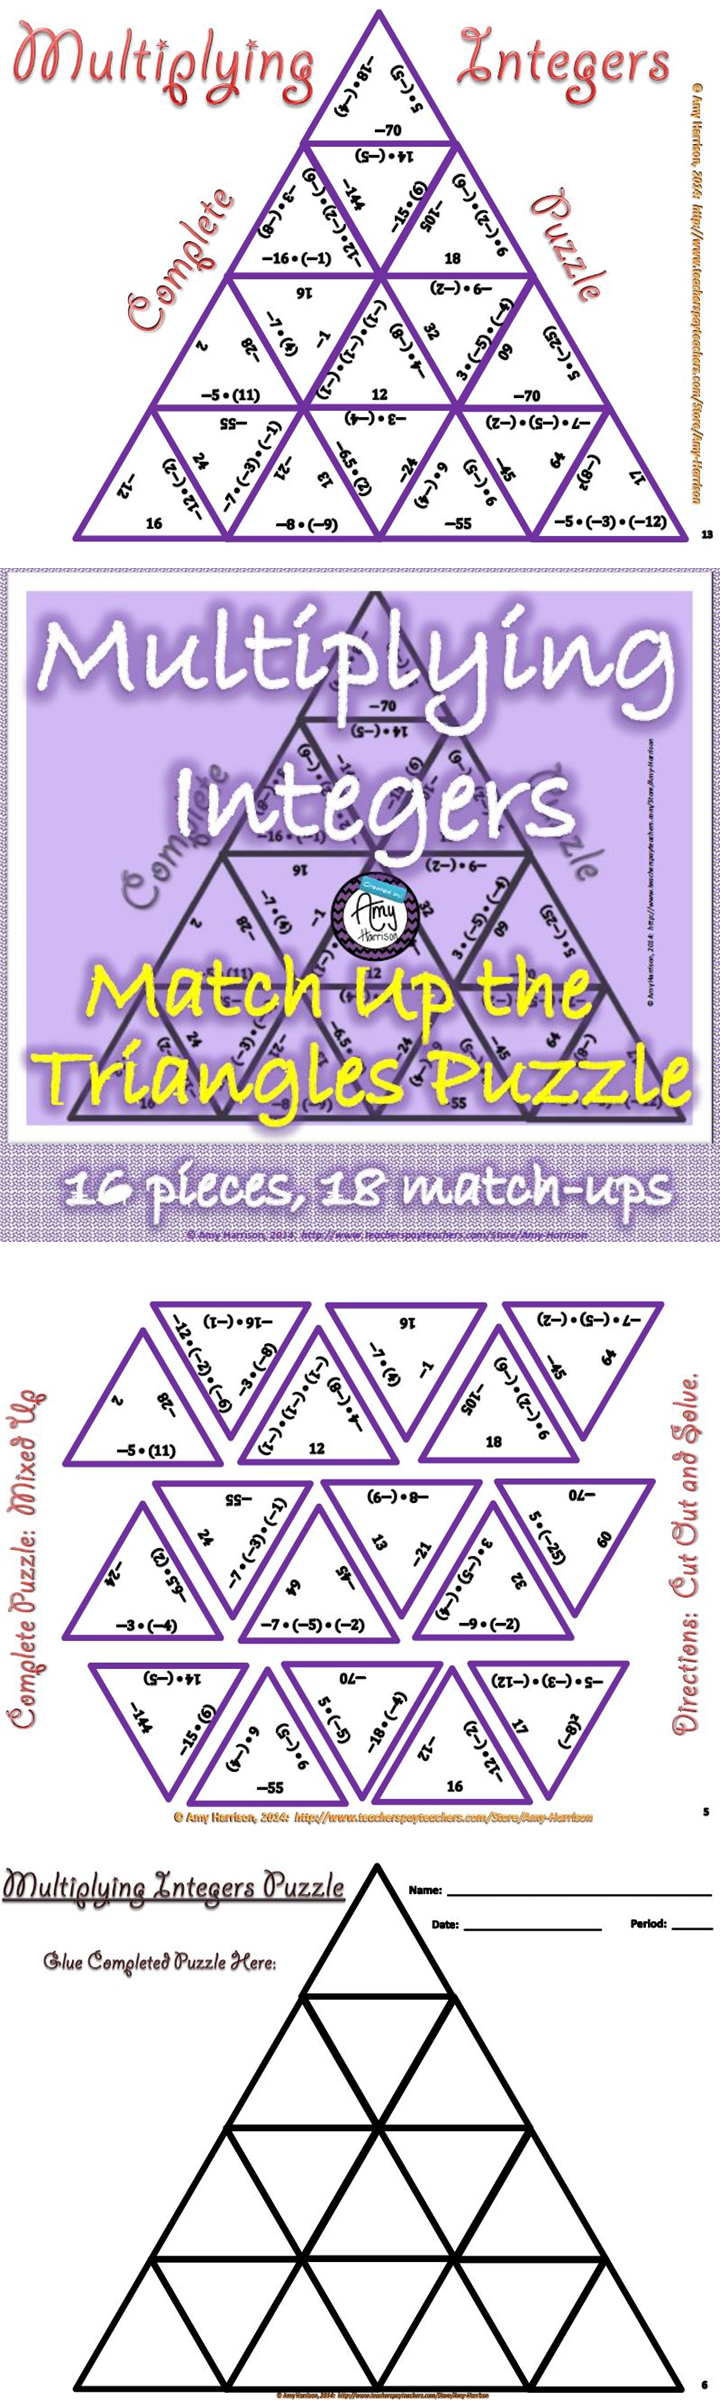 Multiplying Integers Matching Triangle Puzzle Specific ways to – Multiply Integers Worksheet